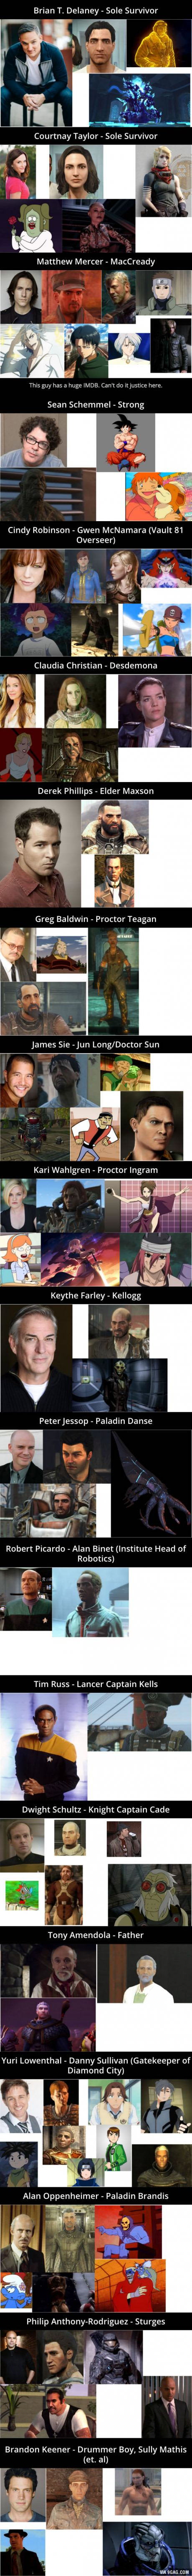 Holy crap, I know so many of the other people they voiced!! I thought I recognised their voices! It had reached the point when I watch anime and okay games where i go, 'Oh I know them'